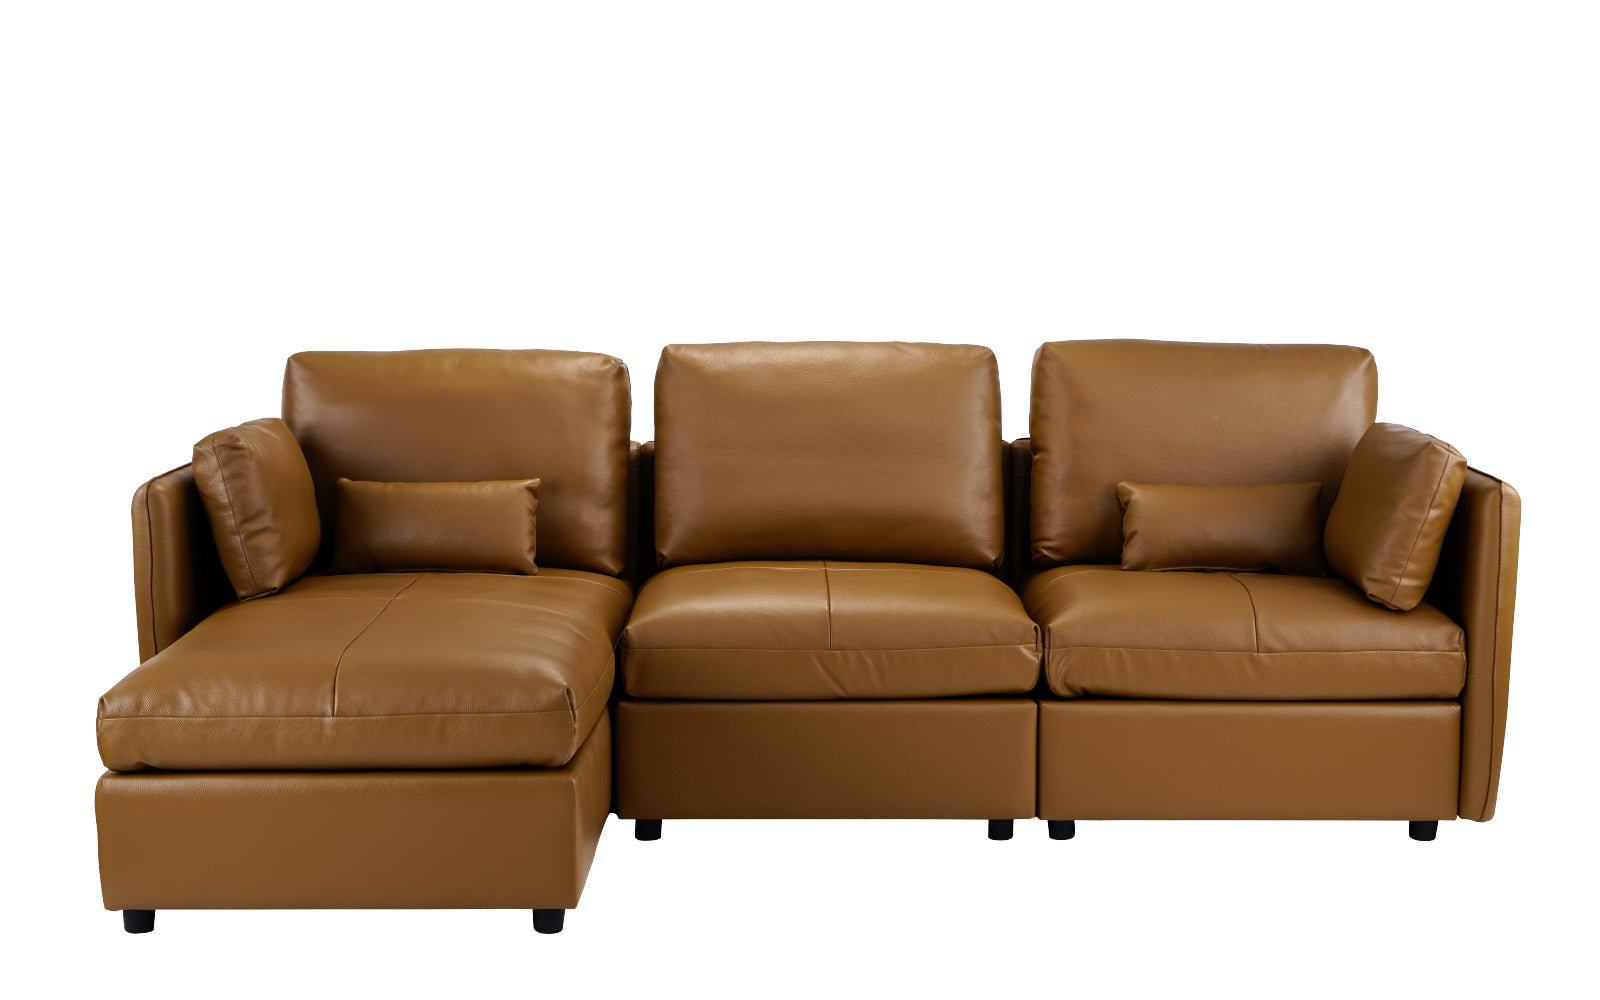 Leather Sectional Sofa Left Chaise Image